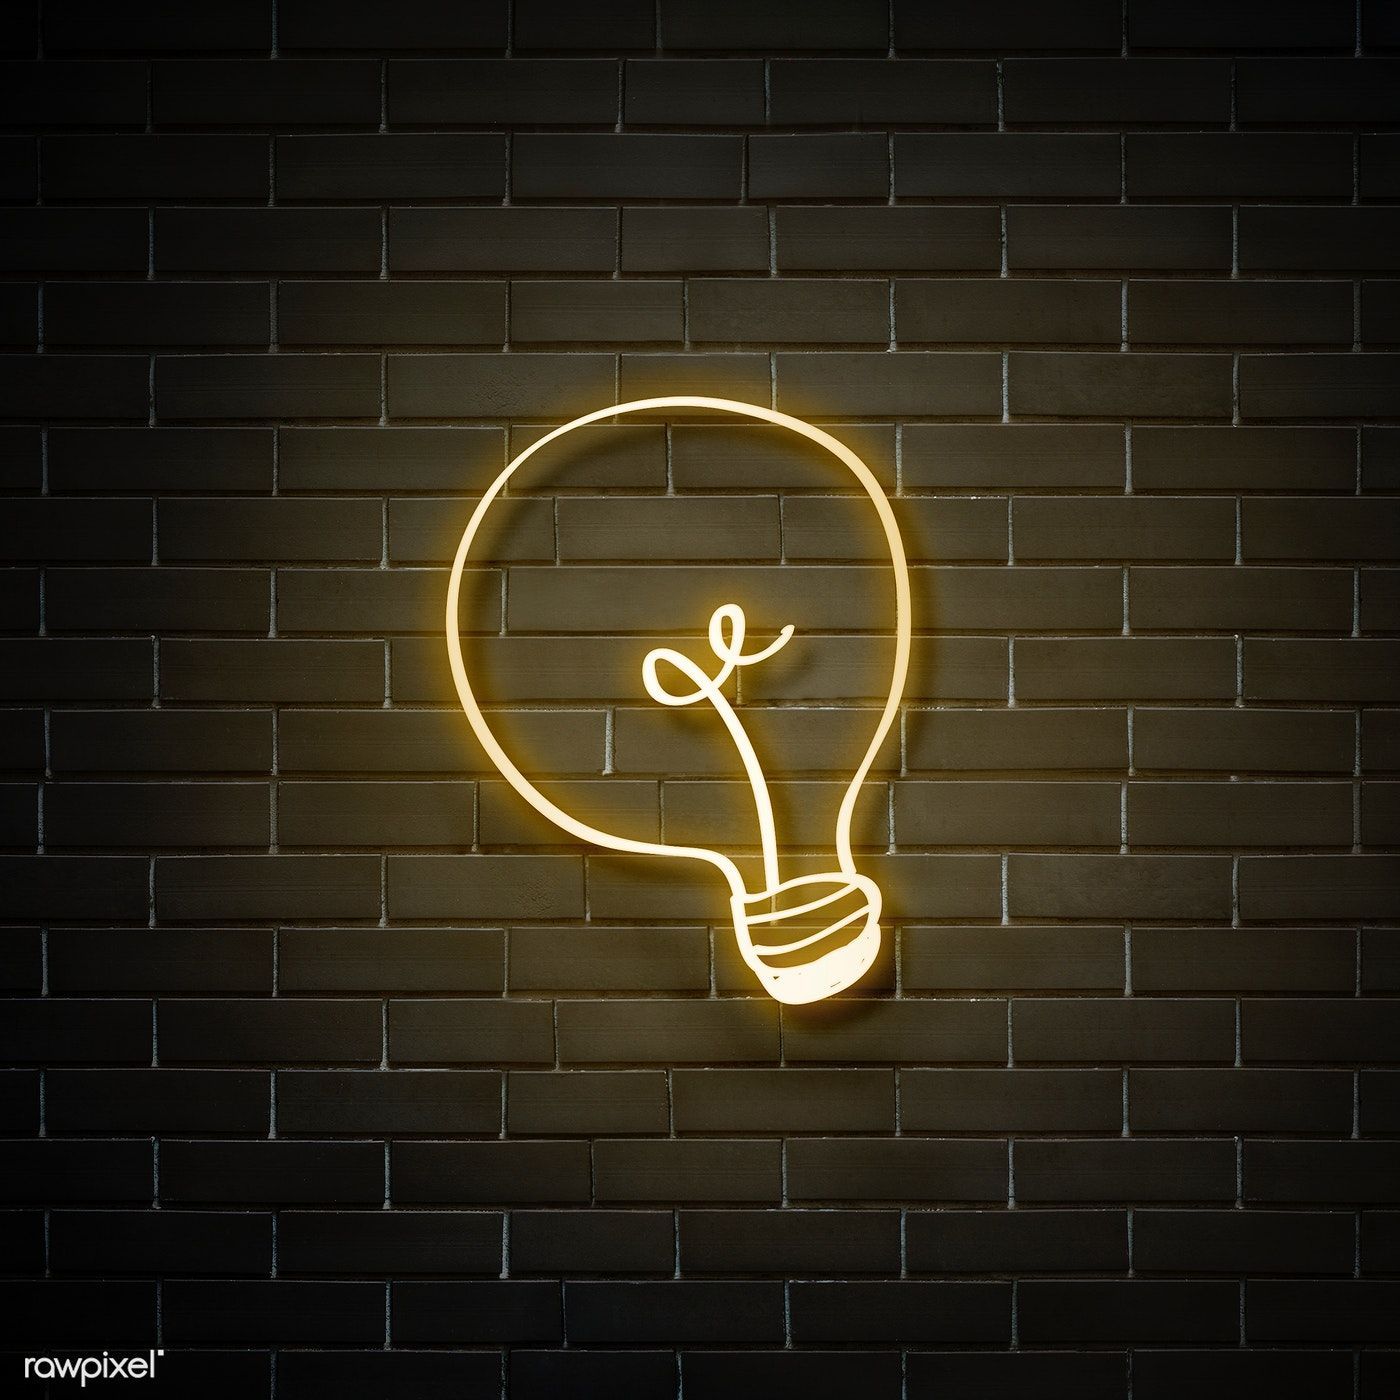 Neon Yellow Bulb On A Walll Free Image By Rawpixel Com Nam Neon Yellow Wallpaper Iphone Neon Neon